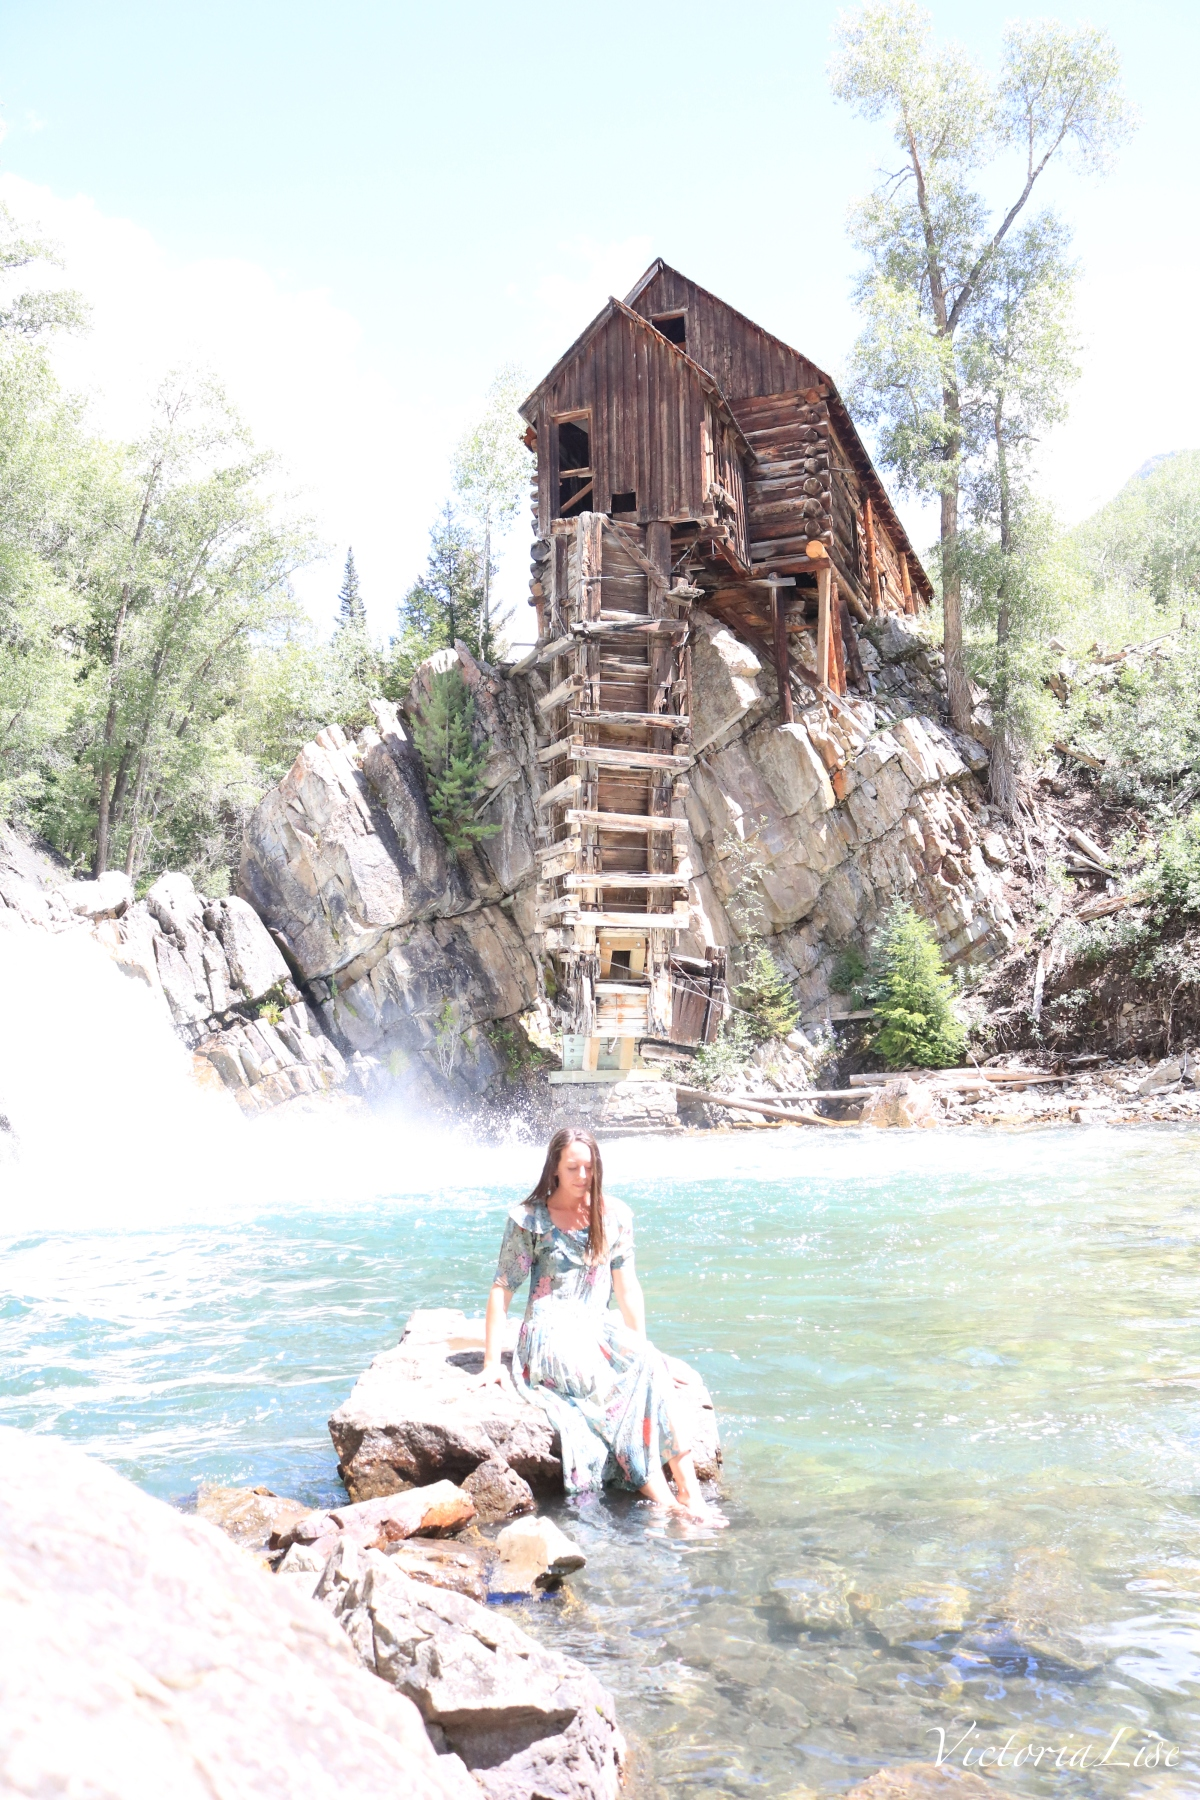 Victoria Lise in Crystal Waters next to Crystal Mill